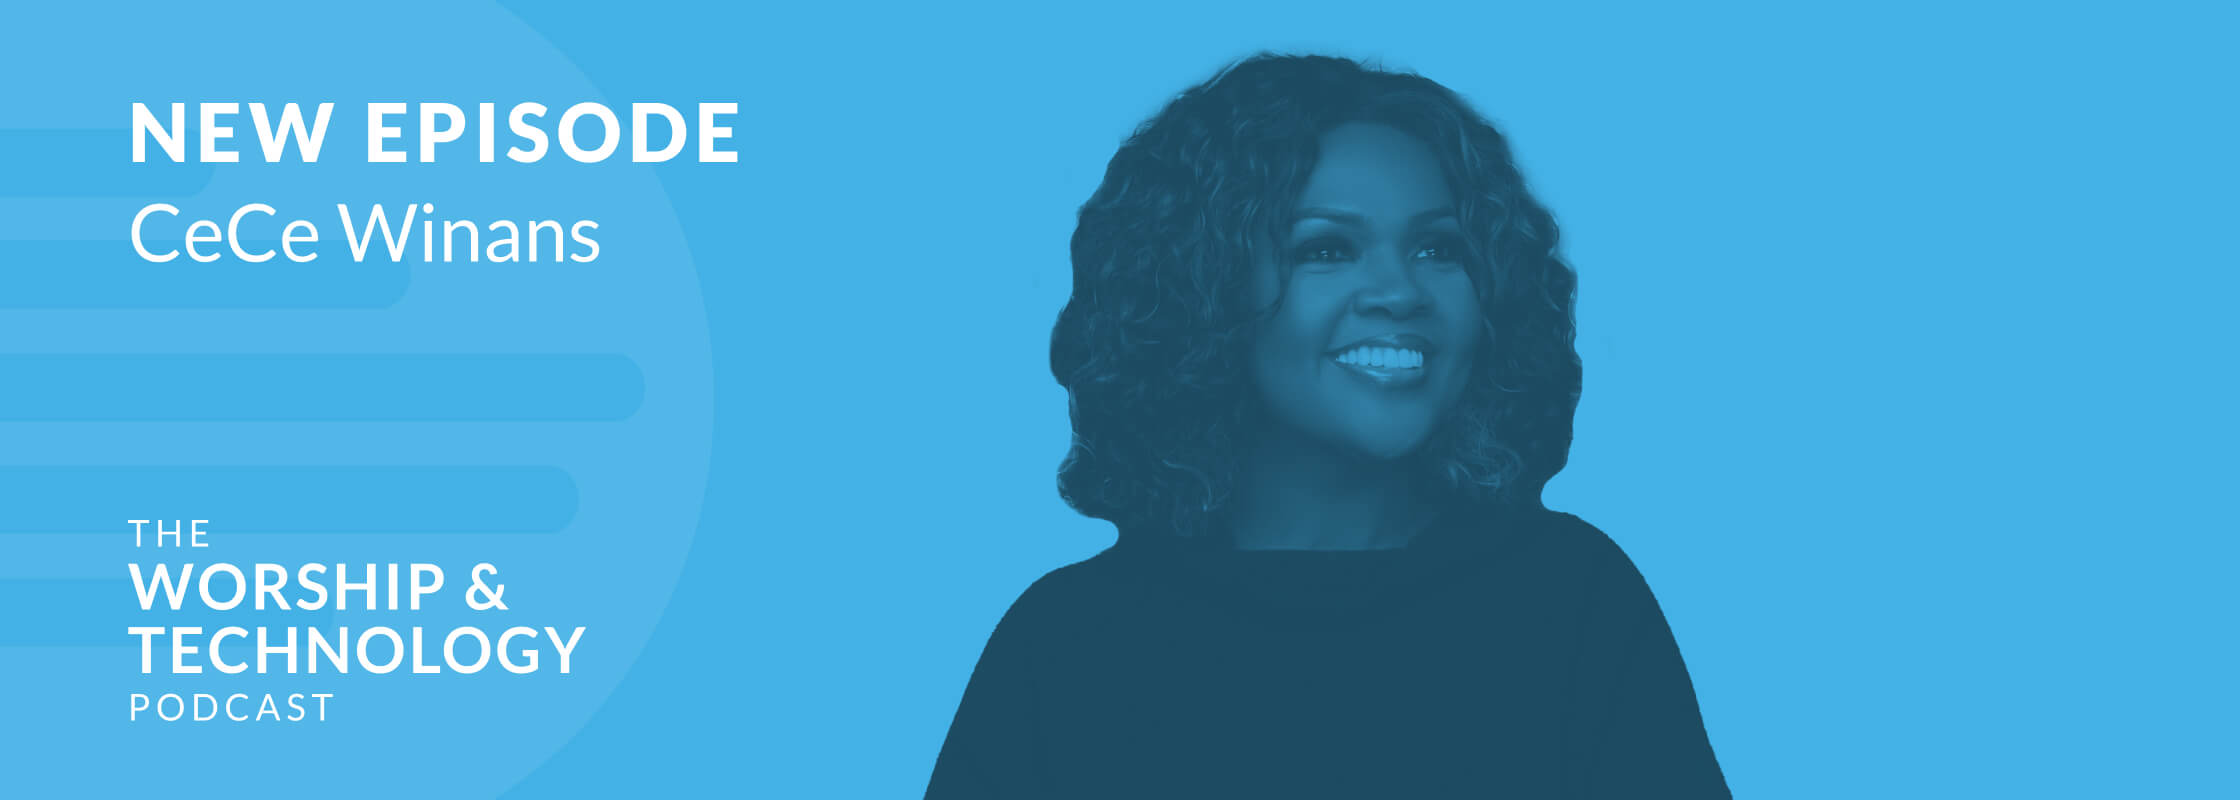 NEW Podcast Episode with CeCe Winans